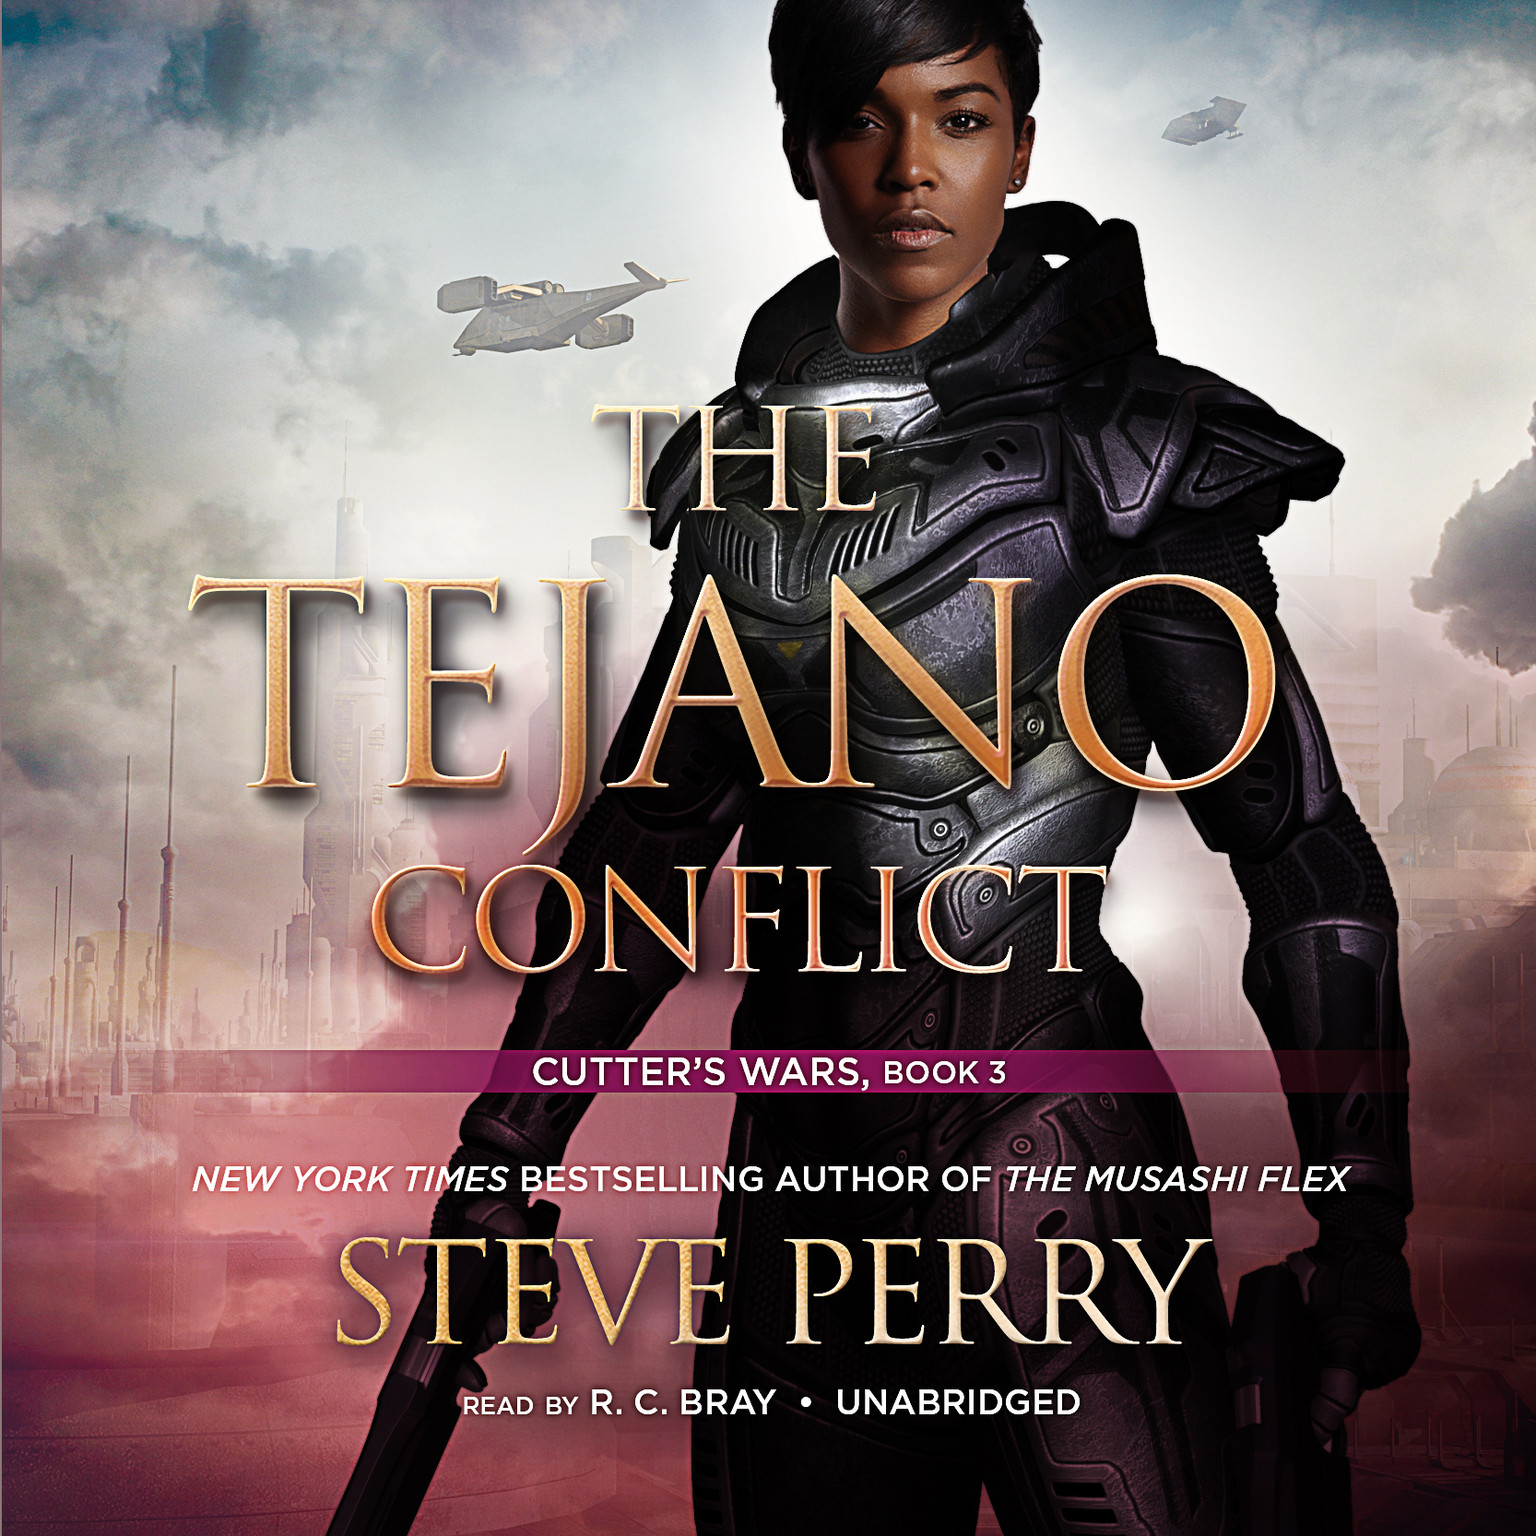 Printable The Tejano Conflict: Cutter's Wars Audiobook Cover Art